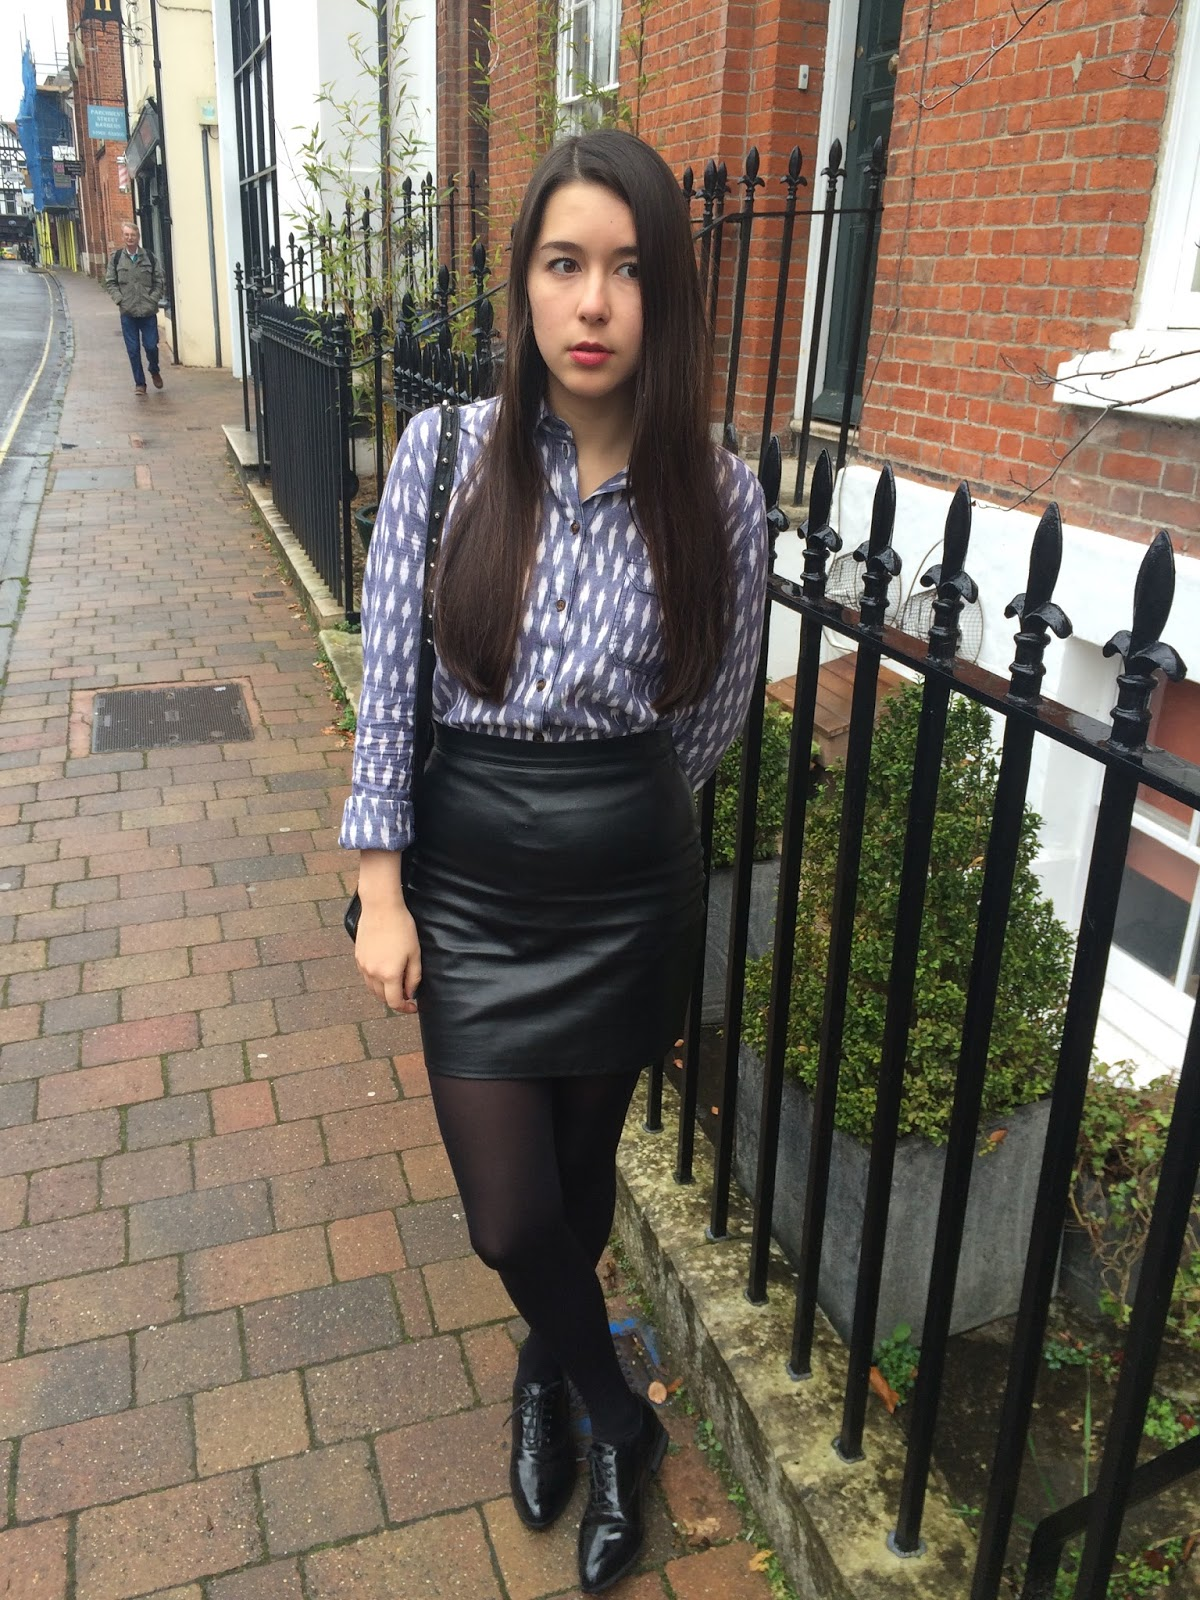 Cocoon Coat, Patterned Shirt & Leather | Girl from North London